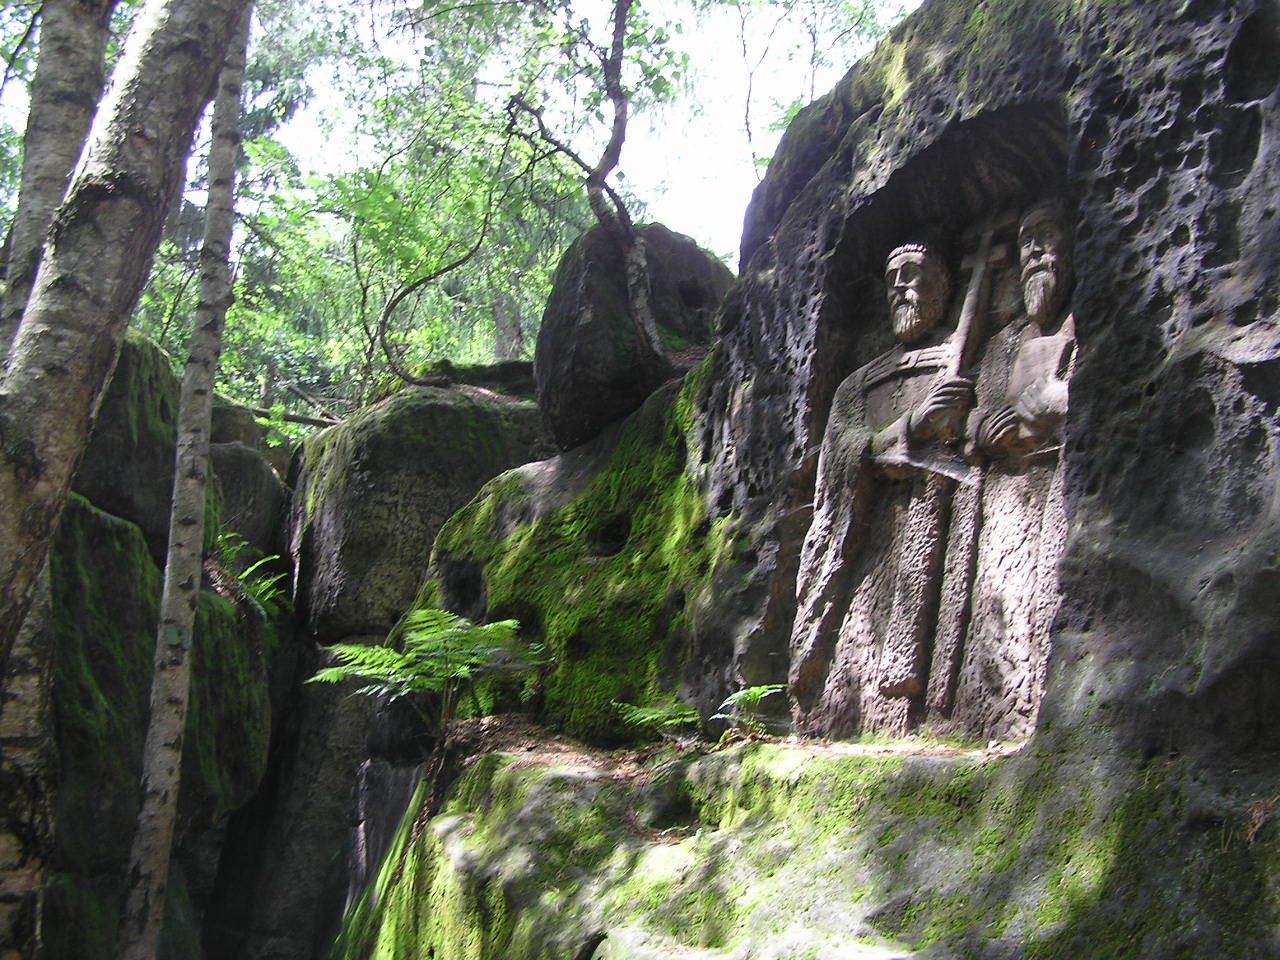 Farm of Kopic and rock reliefs